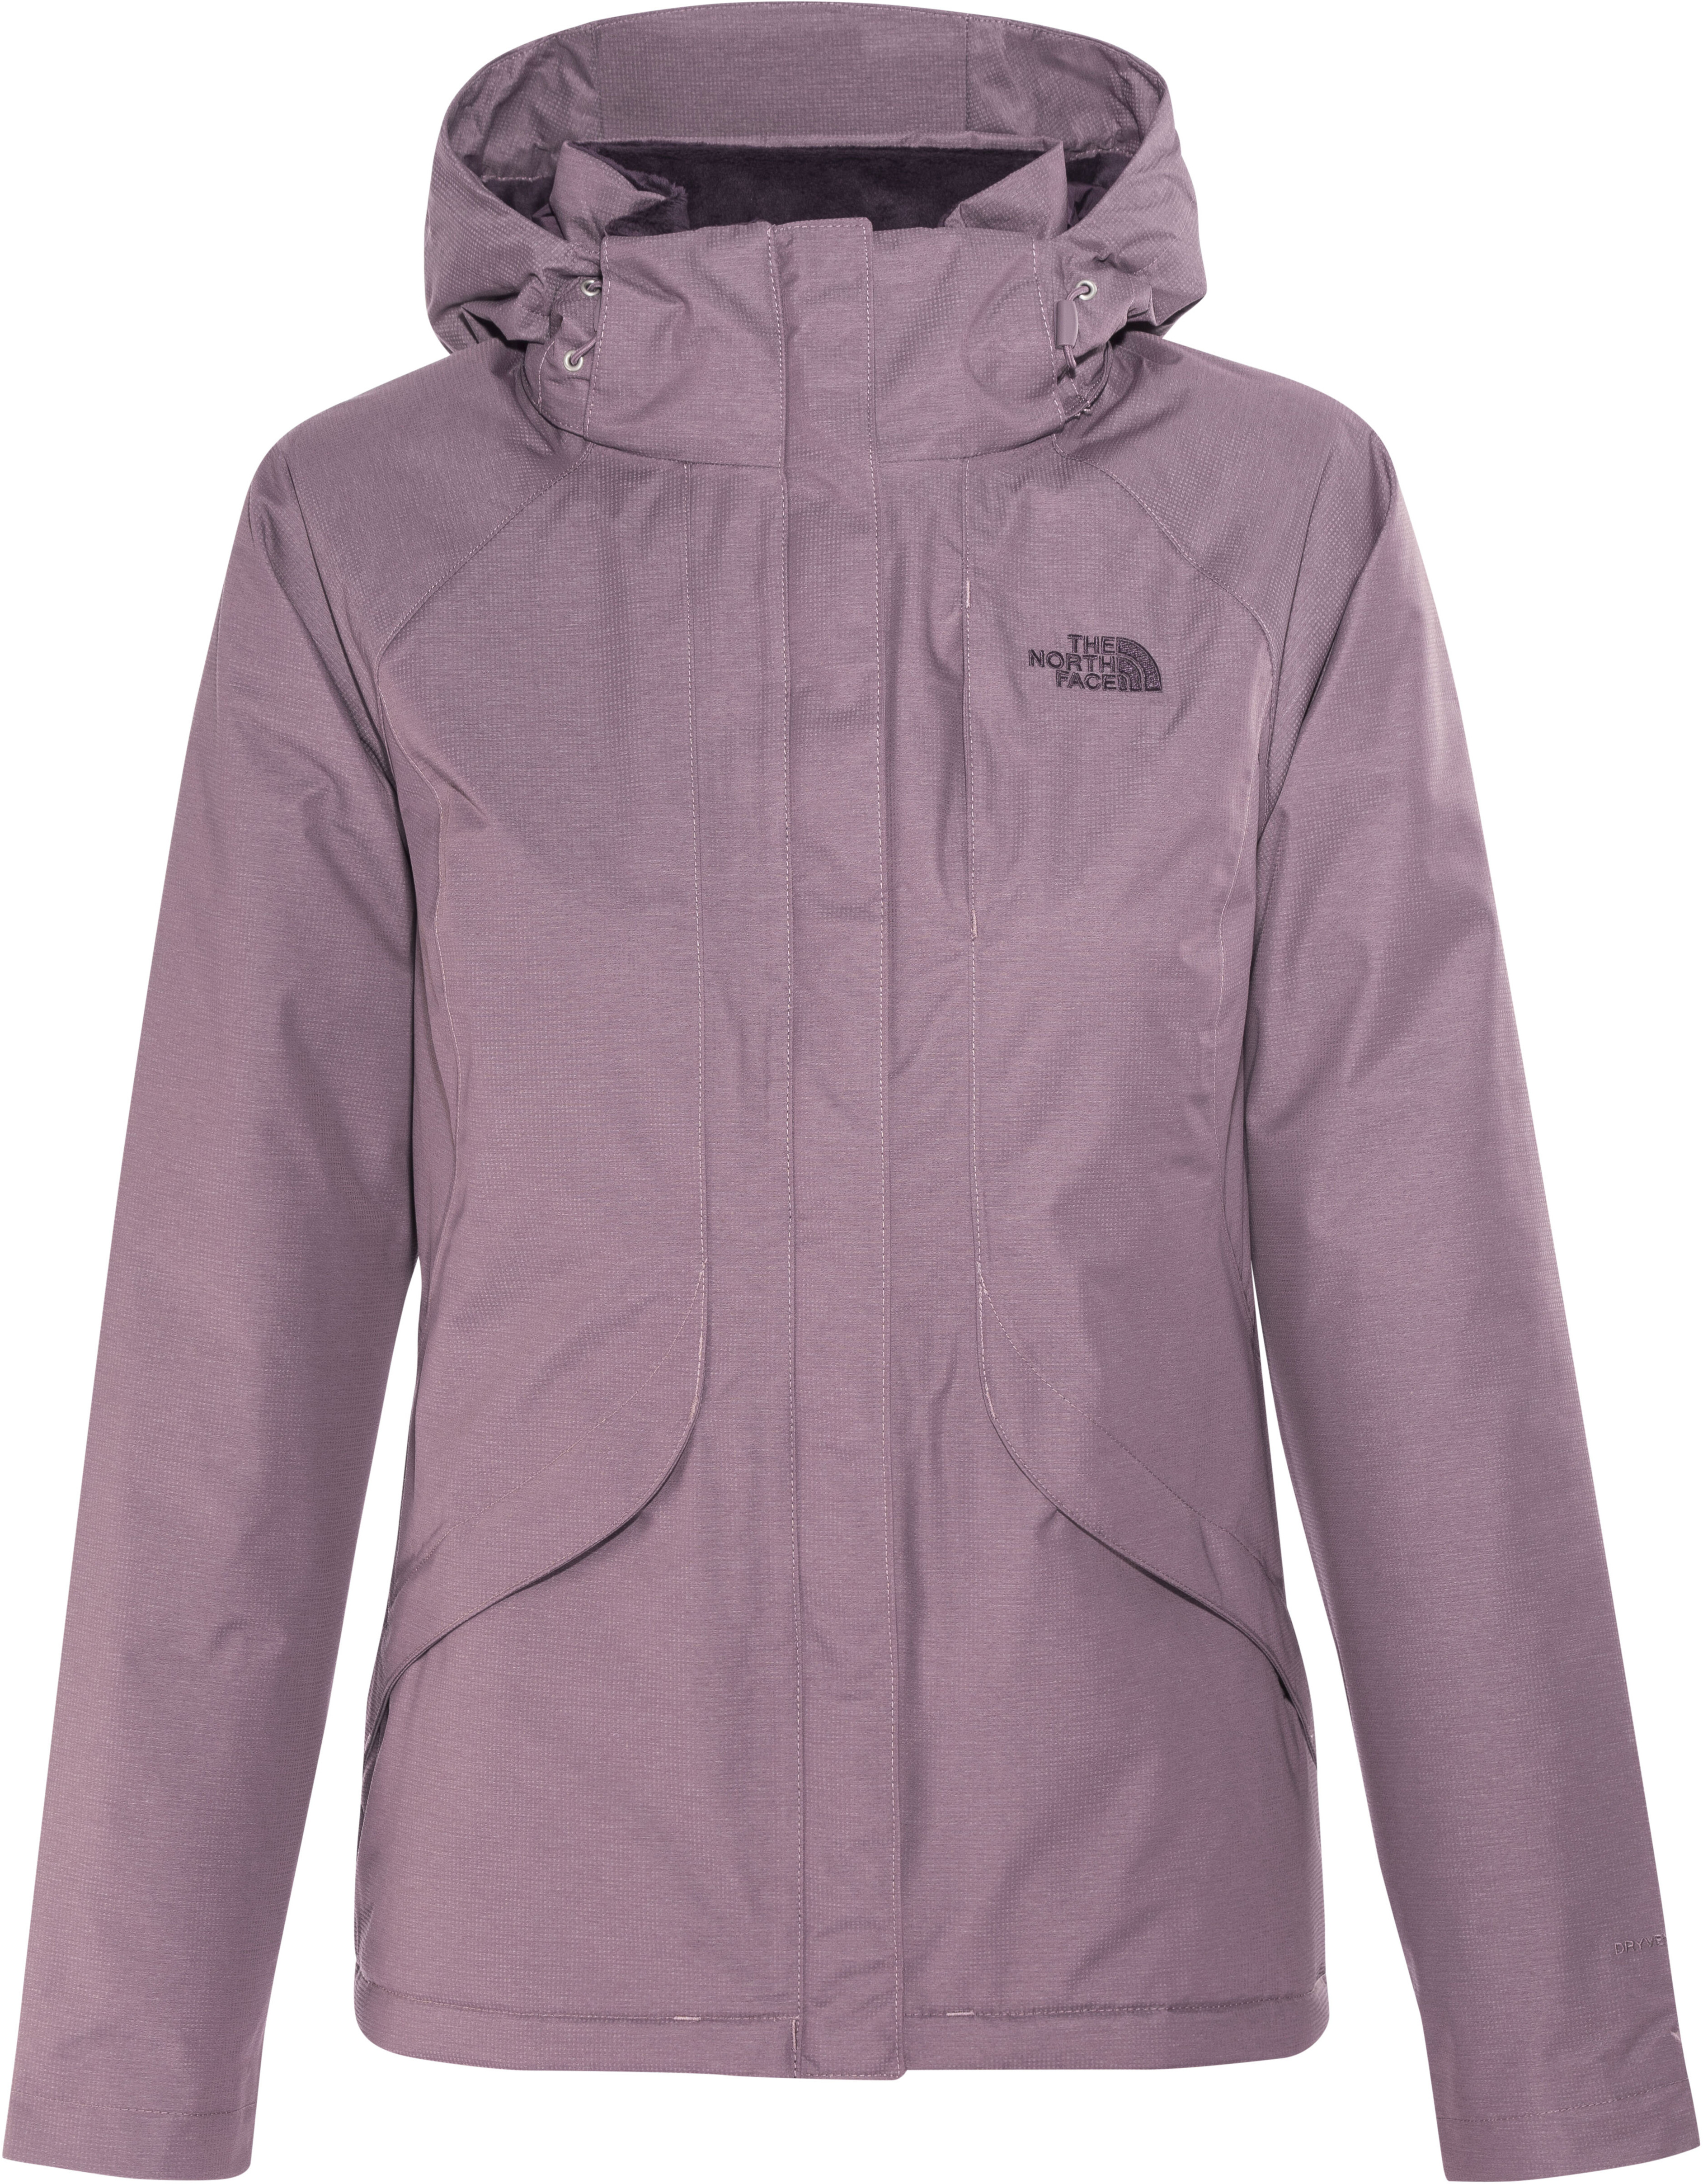 191548150db The North Face Inlux Insulated Jas Dames, black plum heather l ...